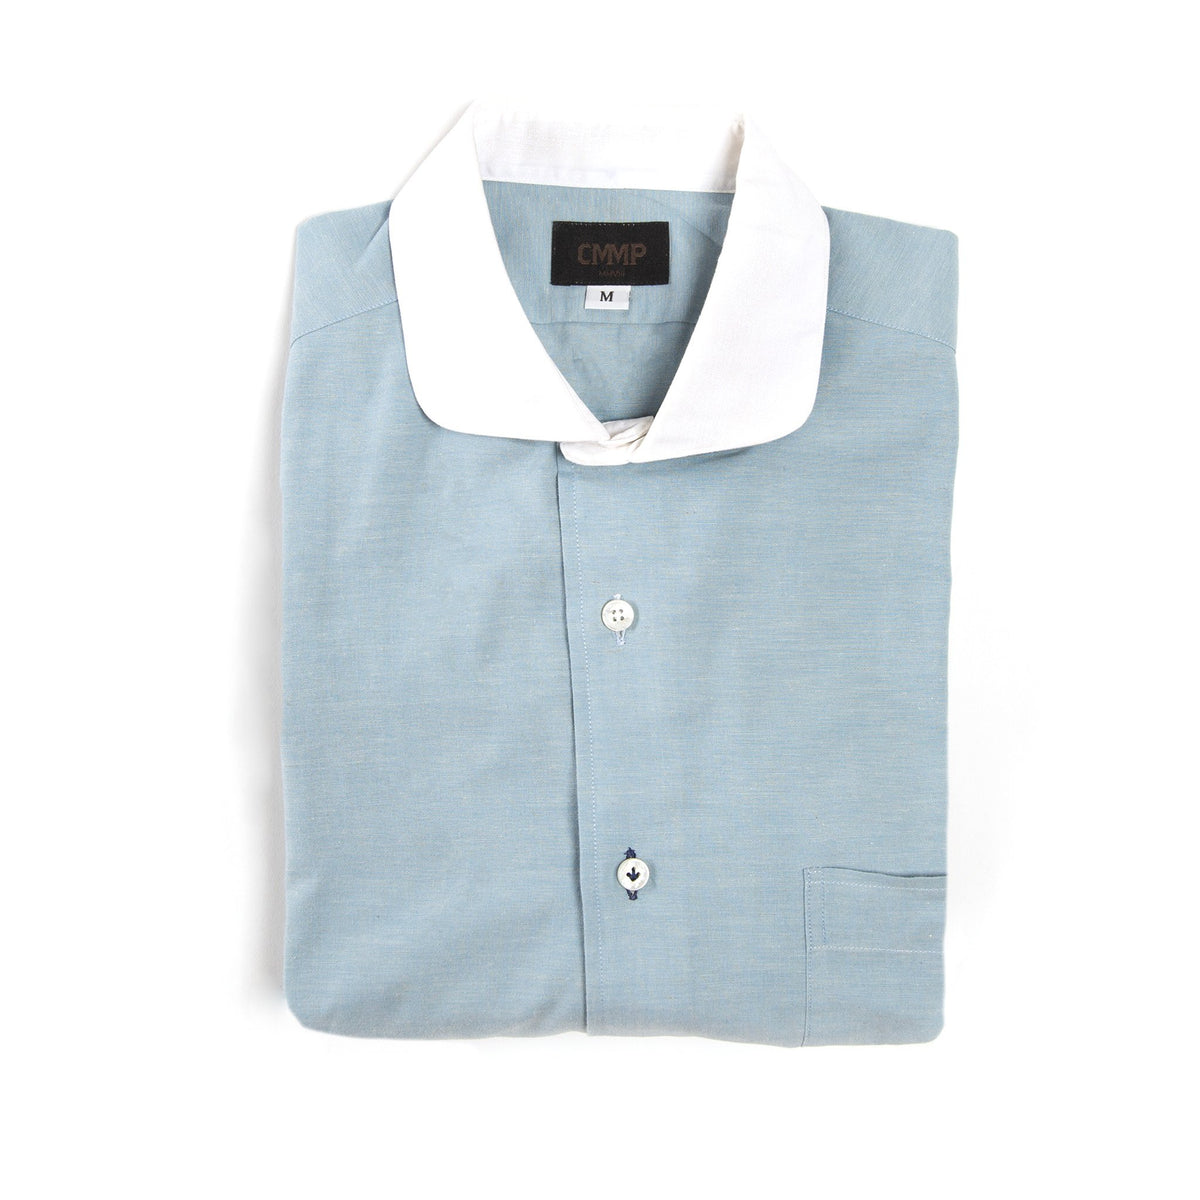 Japanese Sky Textured Cotton Shirt